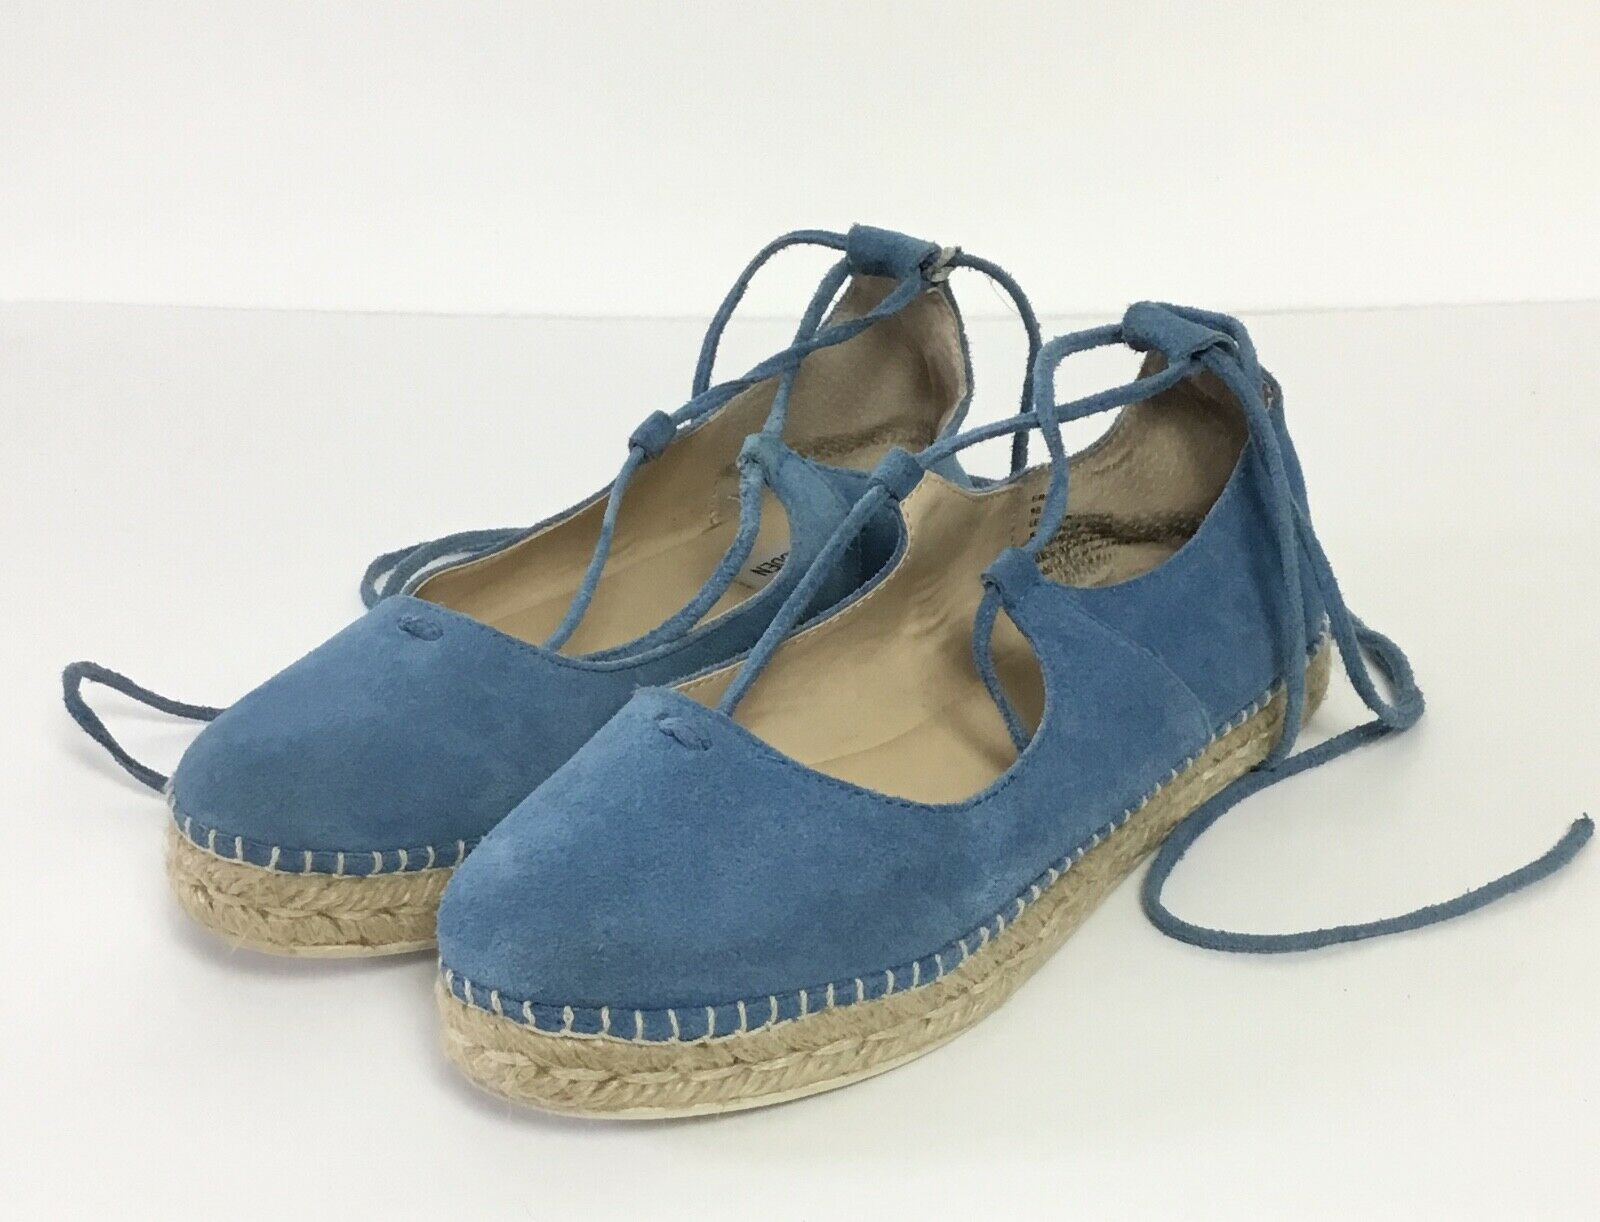 Steve Madden Espadrille Strappy Lace Up Sandals Size 9B